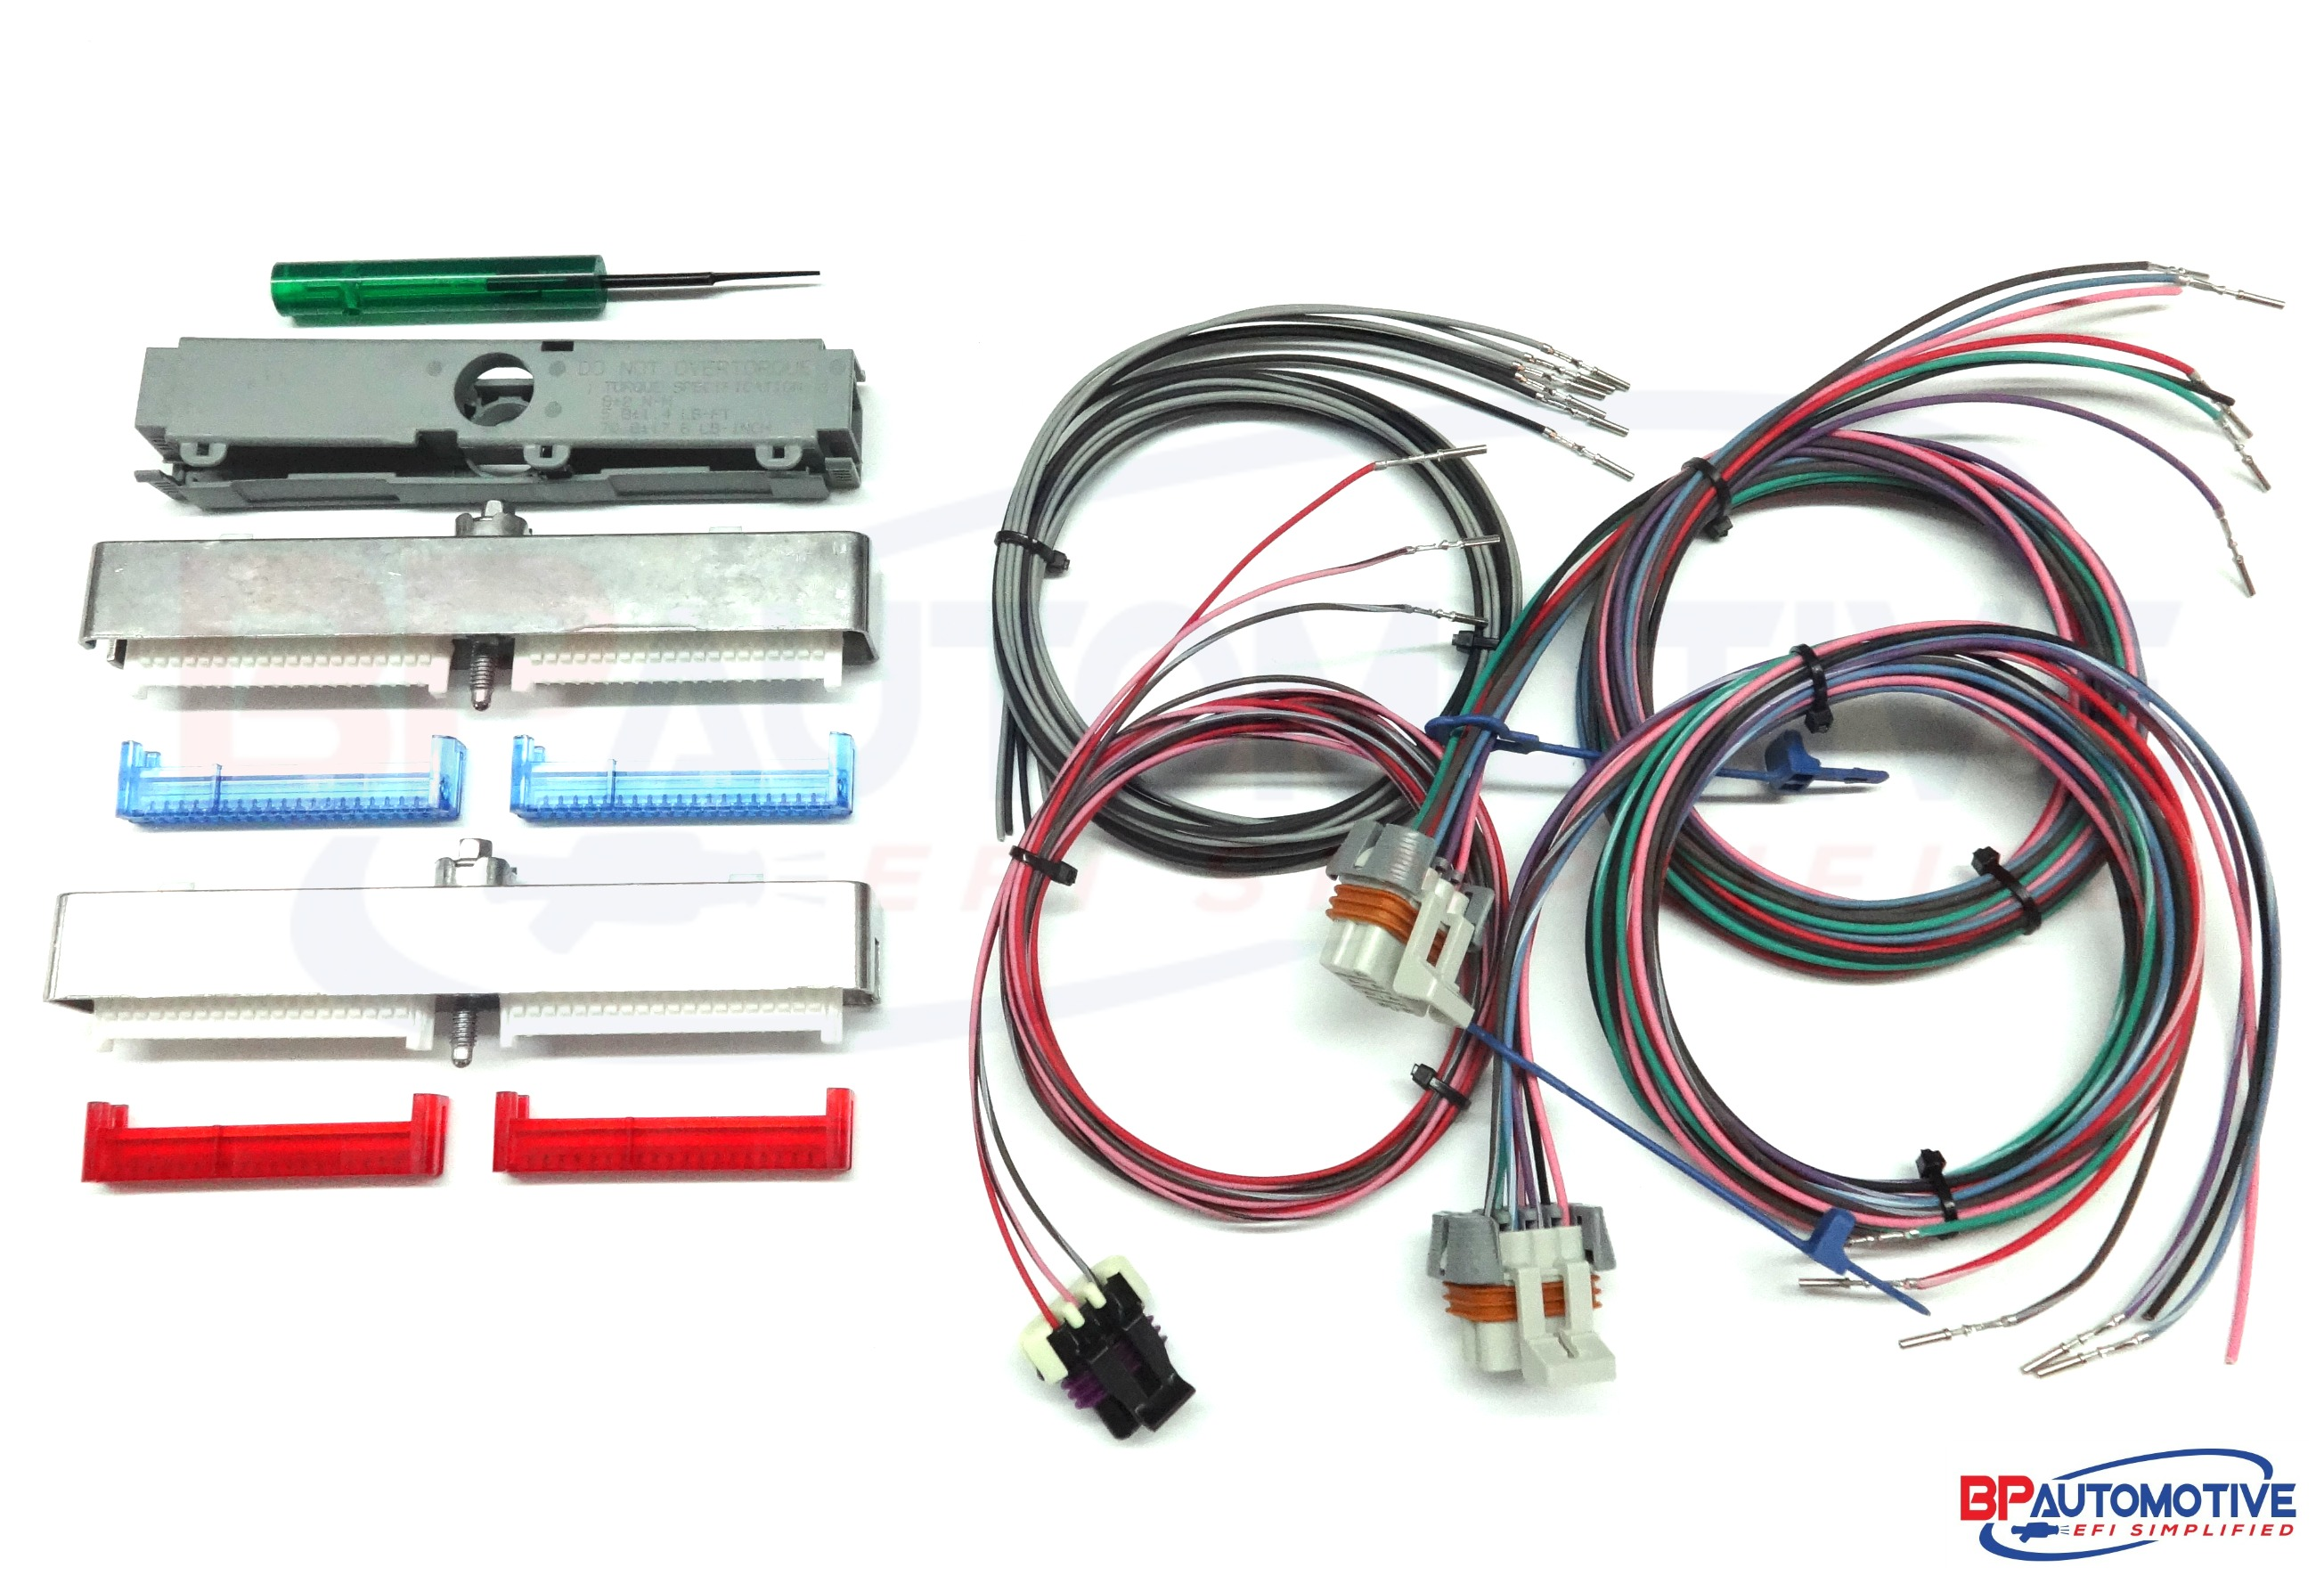 bp automotive has professional diy wiring kits, pcms, accessory harnesses,  wiring accessories, and air conditioning parts